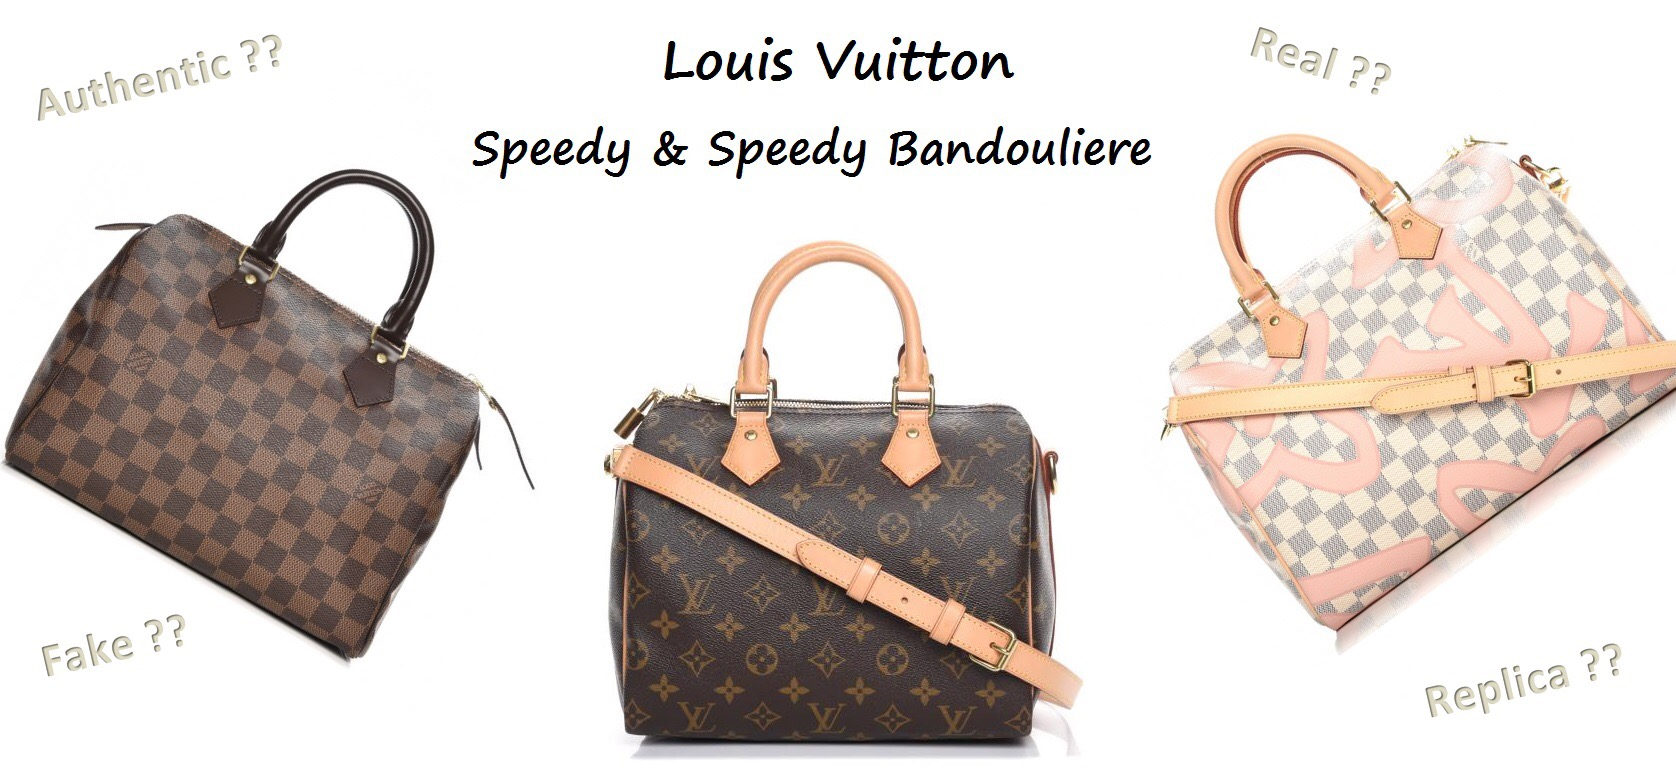 129418fda798 How to Spot a Fake Louis Vuitton Bag 101 ǀ Speedy   Speedy Bandouliere